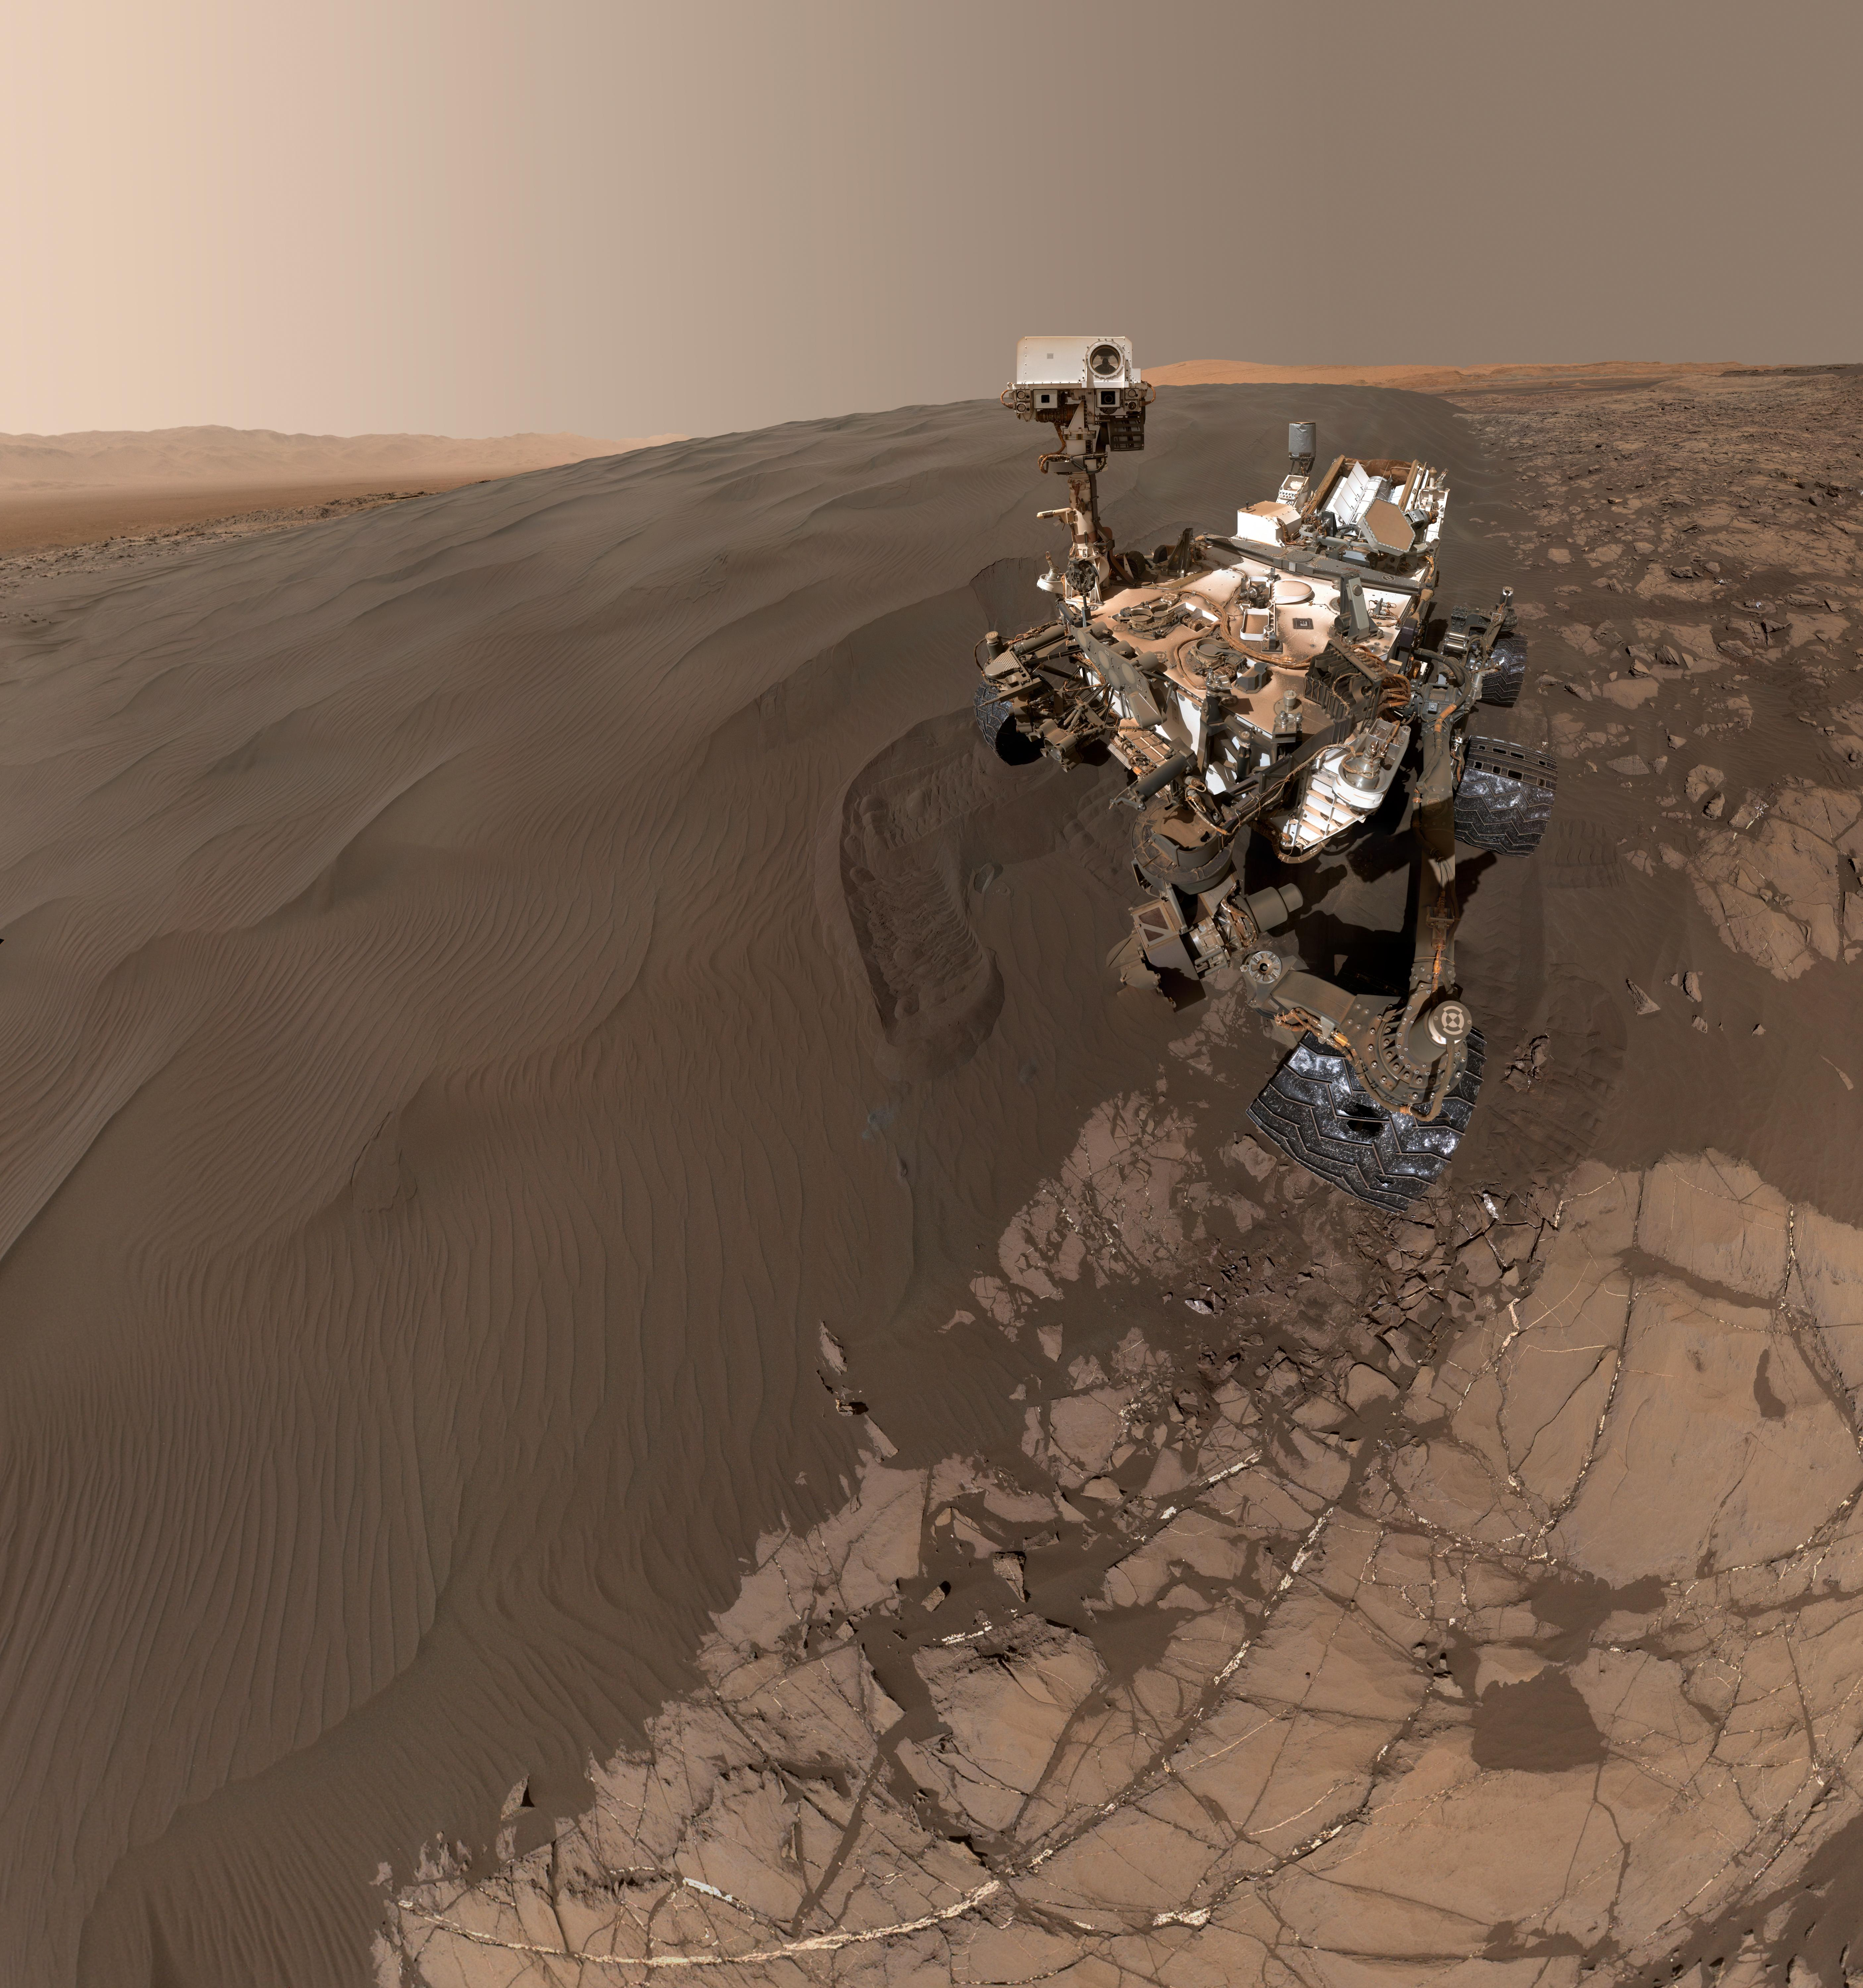 Glamour shot: The Curiosity rover at work on Mars's Bagnold Dune Field, on January 19, 2016